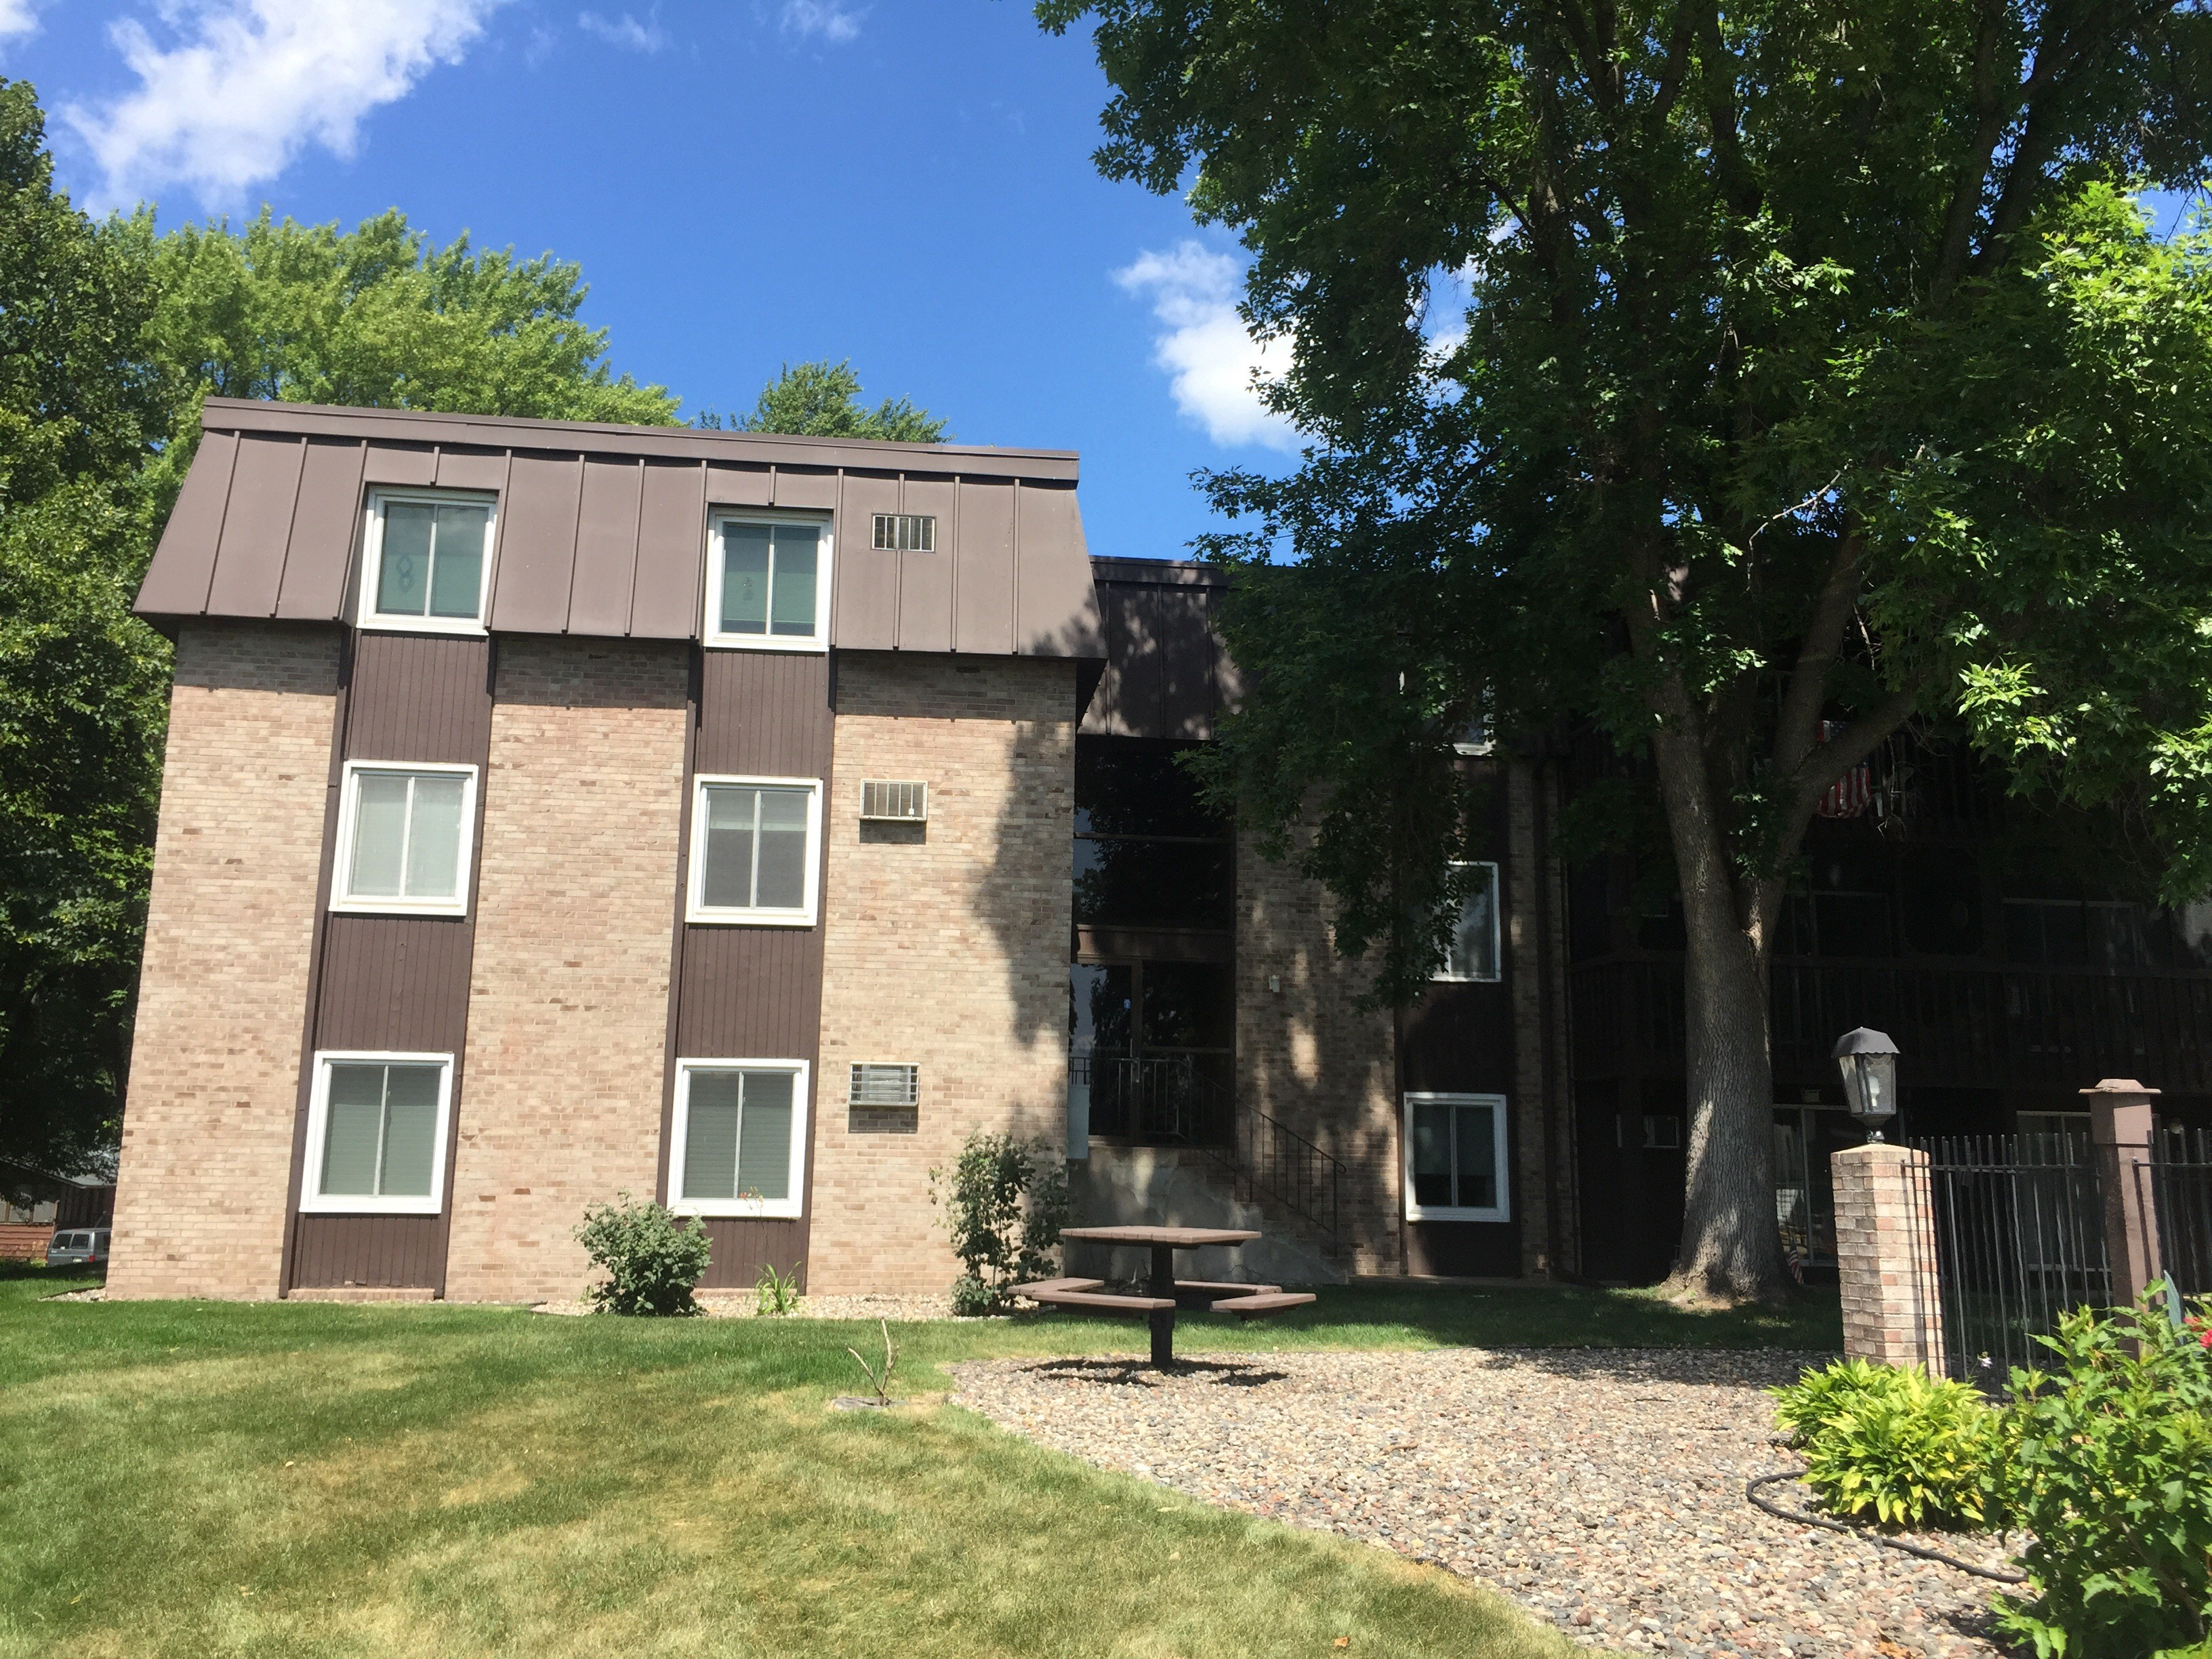 4207 Lakeside Ave N Minneapolis Mn 55429 3 Bedroom Apartment For Rent Padmapper